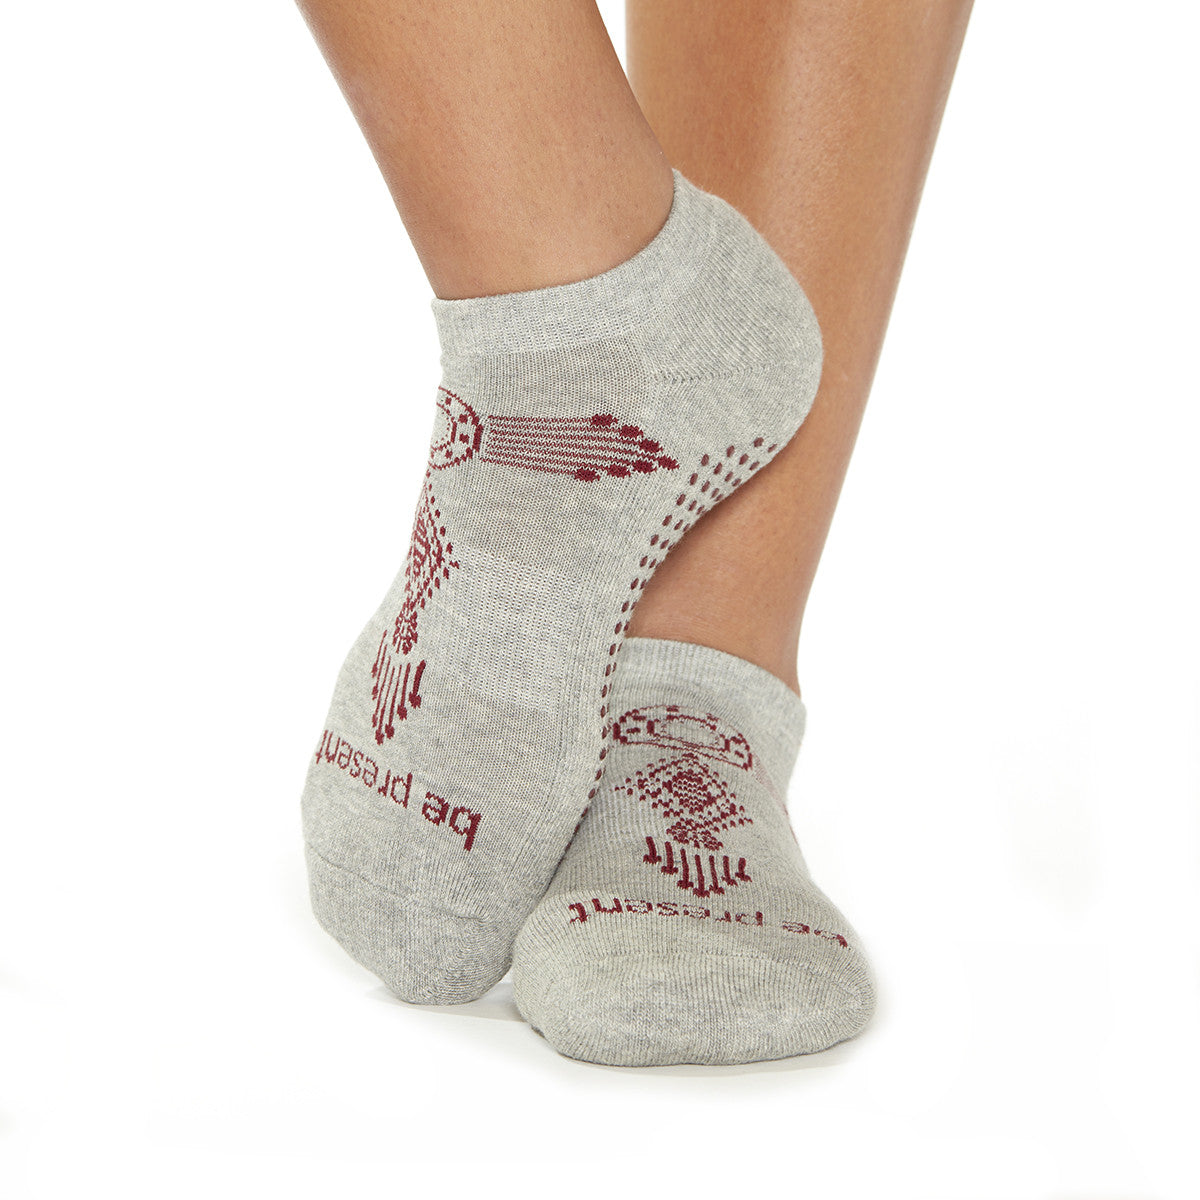 SALE Be Present Henna Grip Socks (Heather Grey/Burgundy)